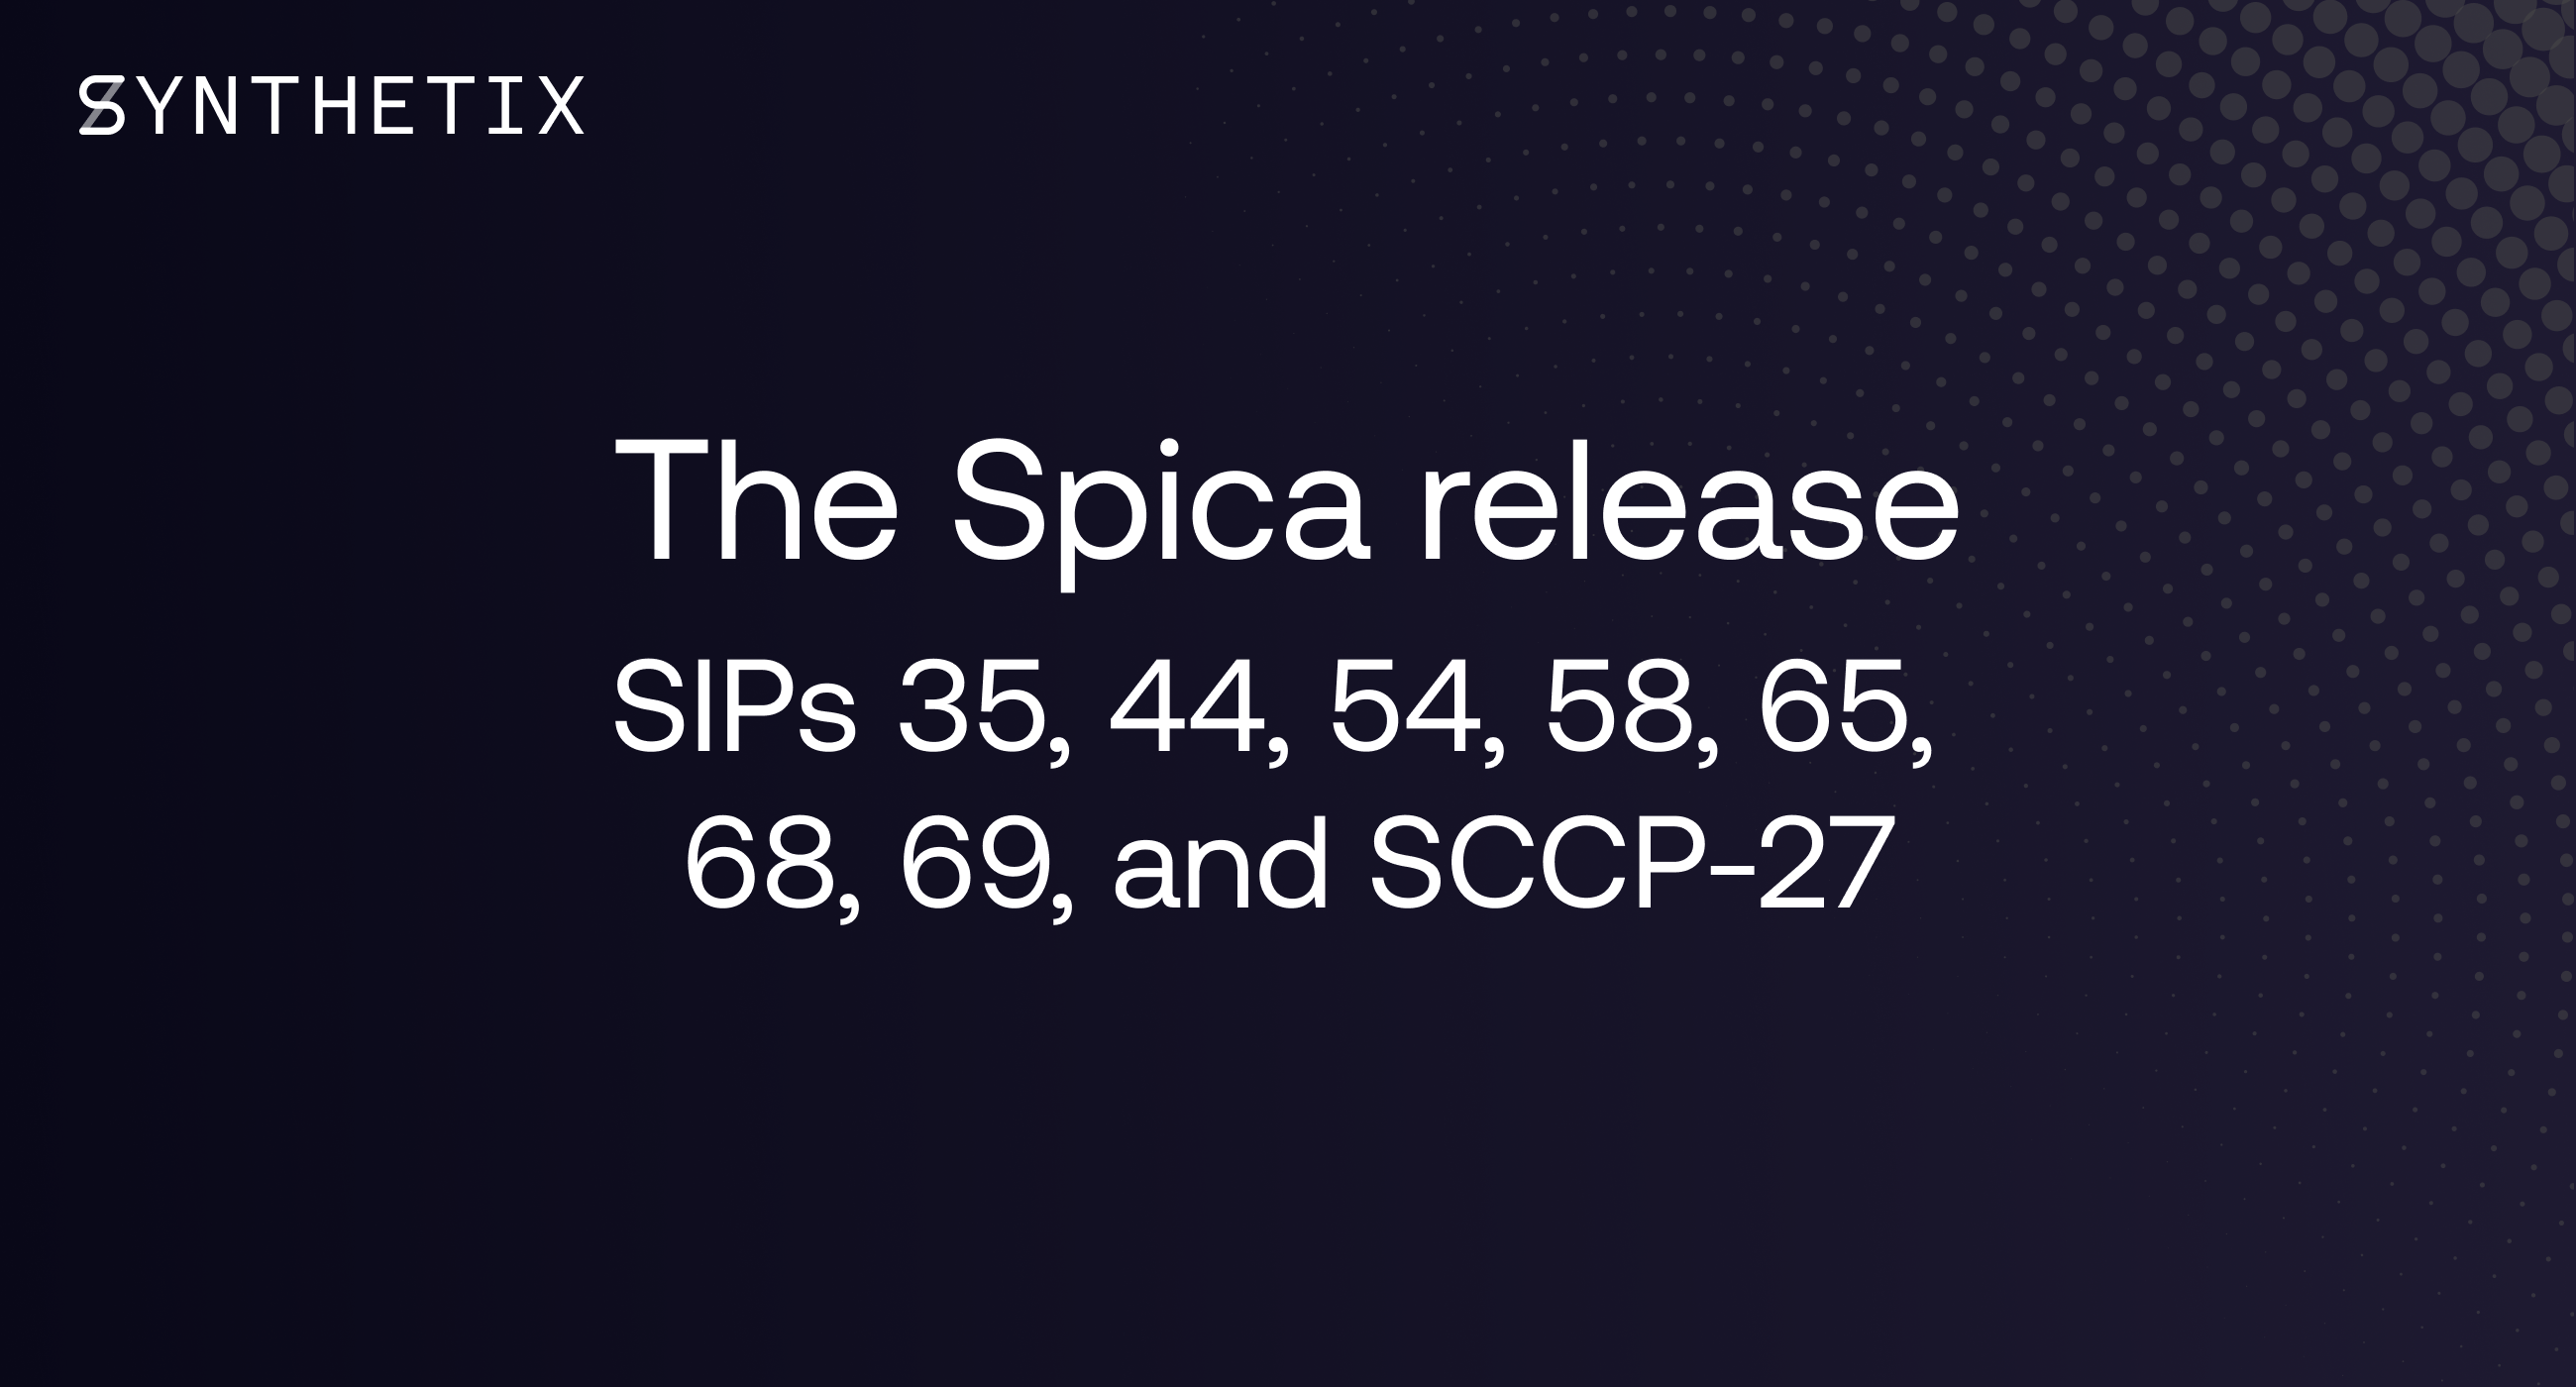 The Spica release